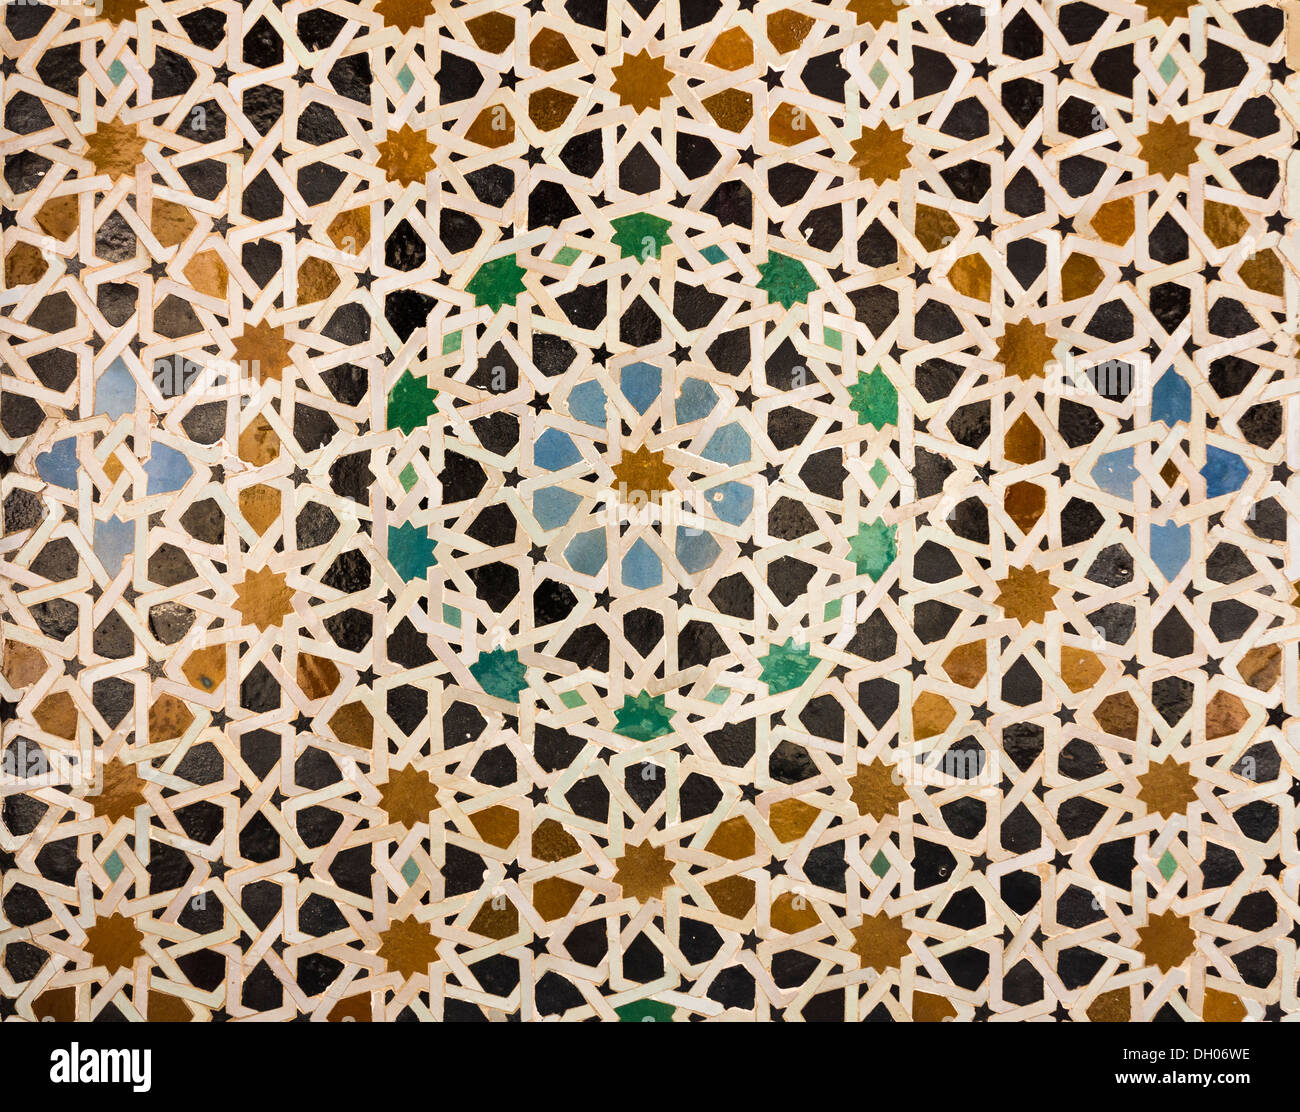 Moroccan Tiles Stock Photos Amp Moroccan Tiles Stock Images